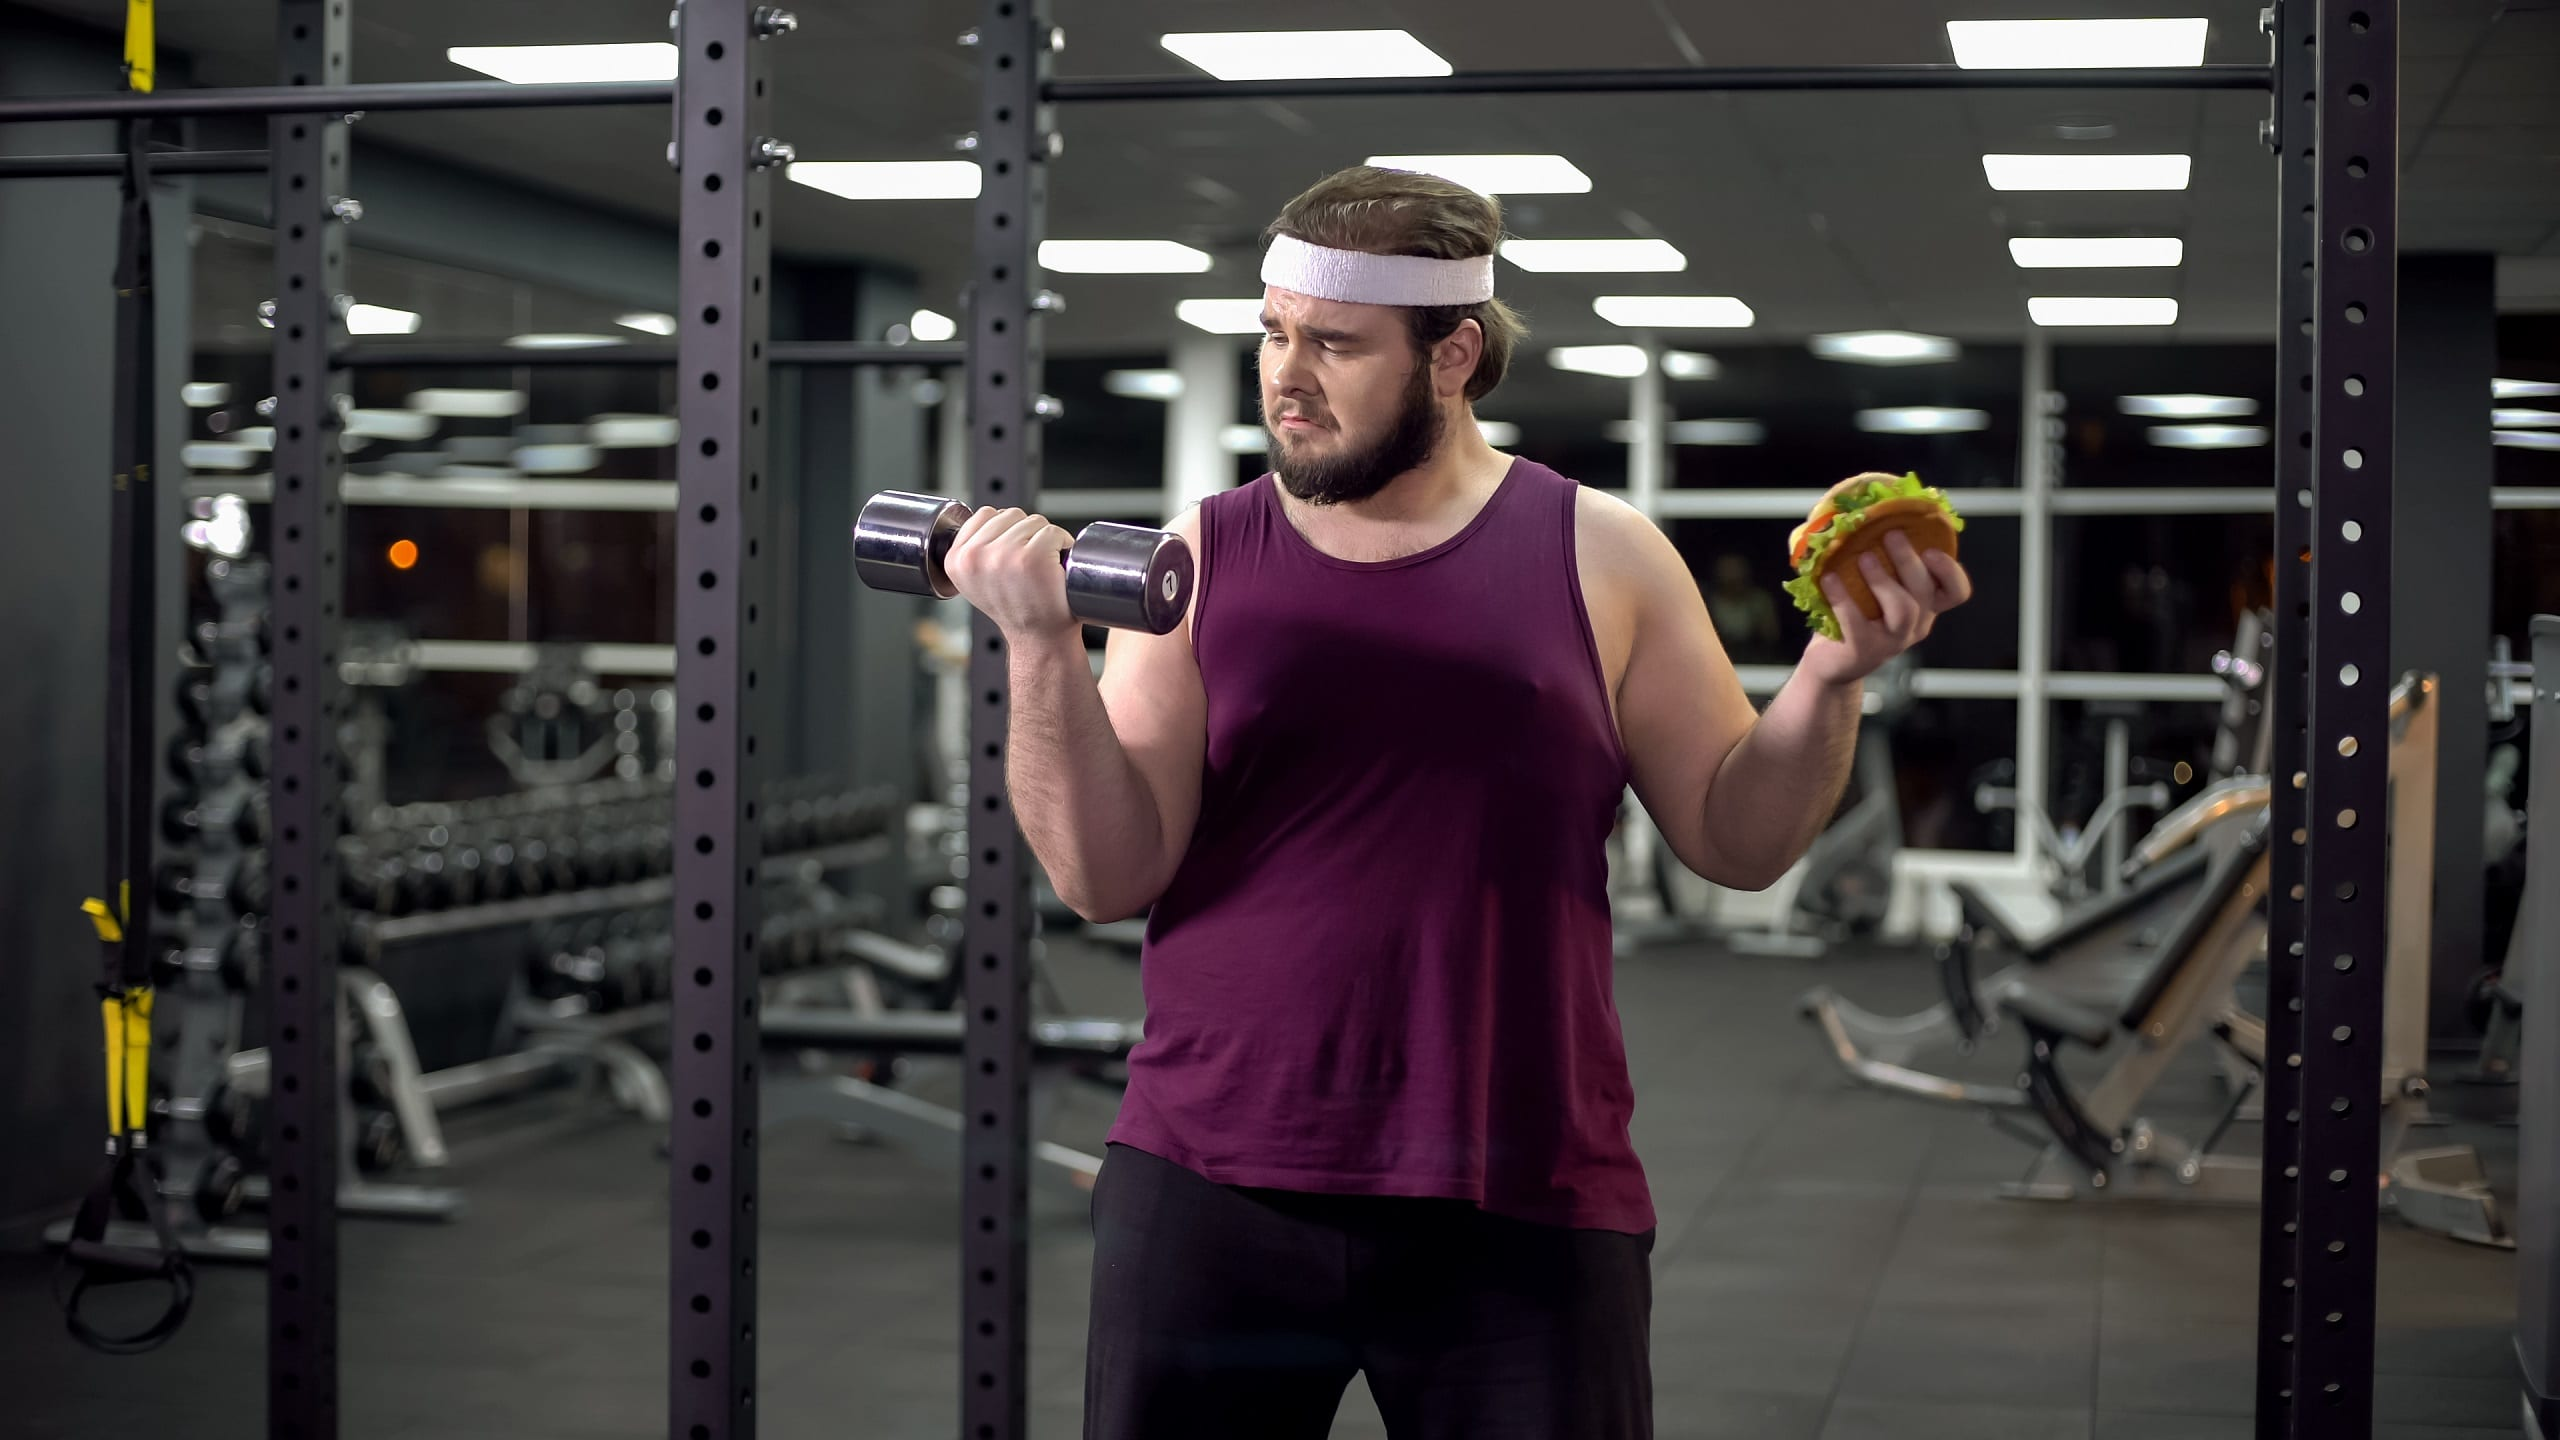 White male in the gym working out trying to get in shape choosing between sport and fast food, burger addiction and motivation. Choices and Self-Discipline.